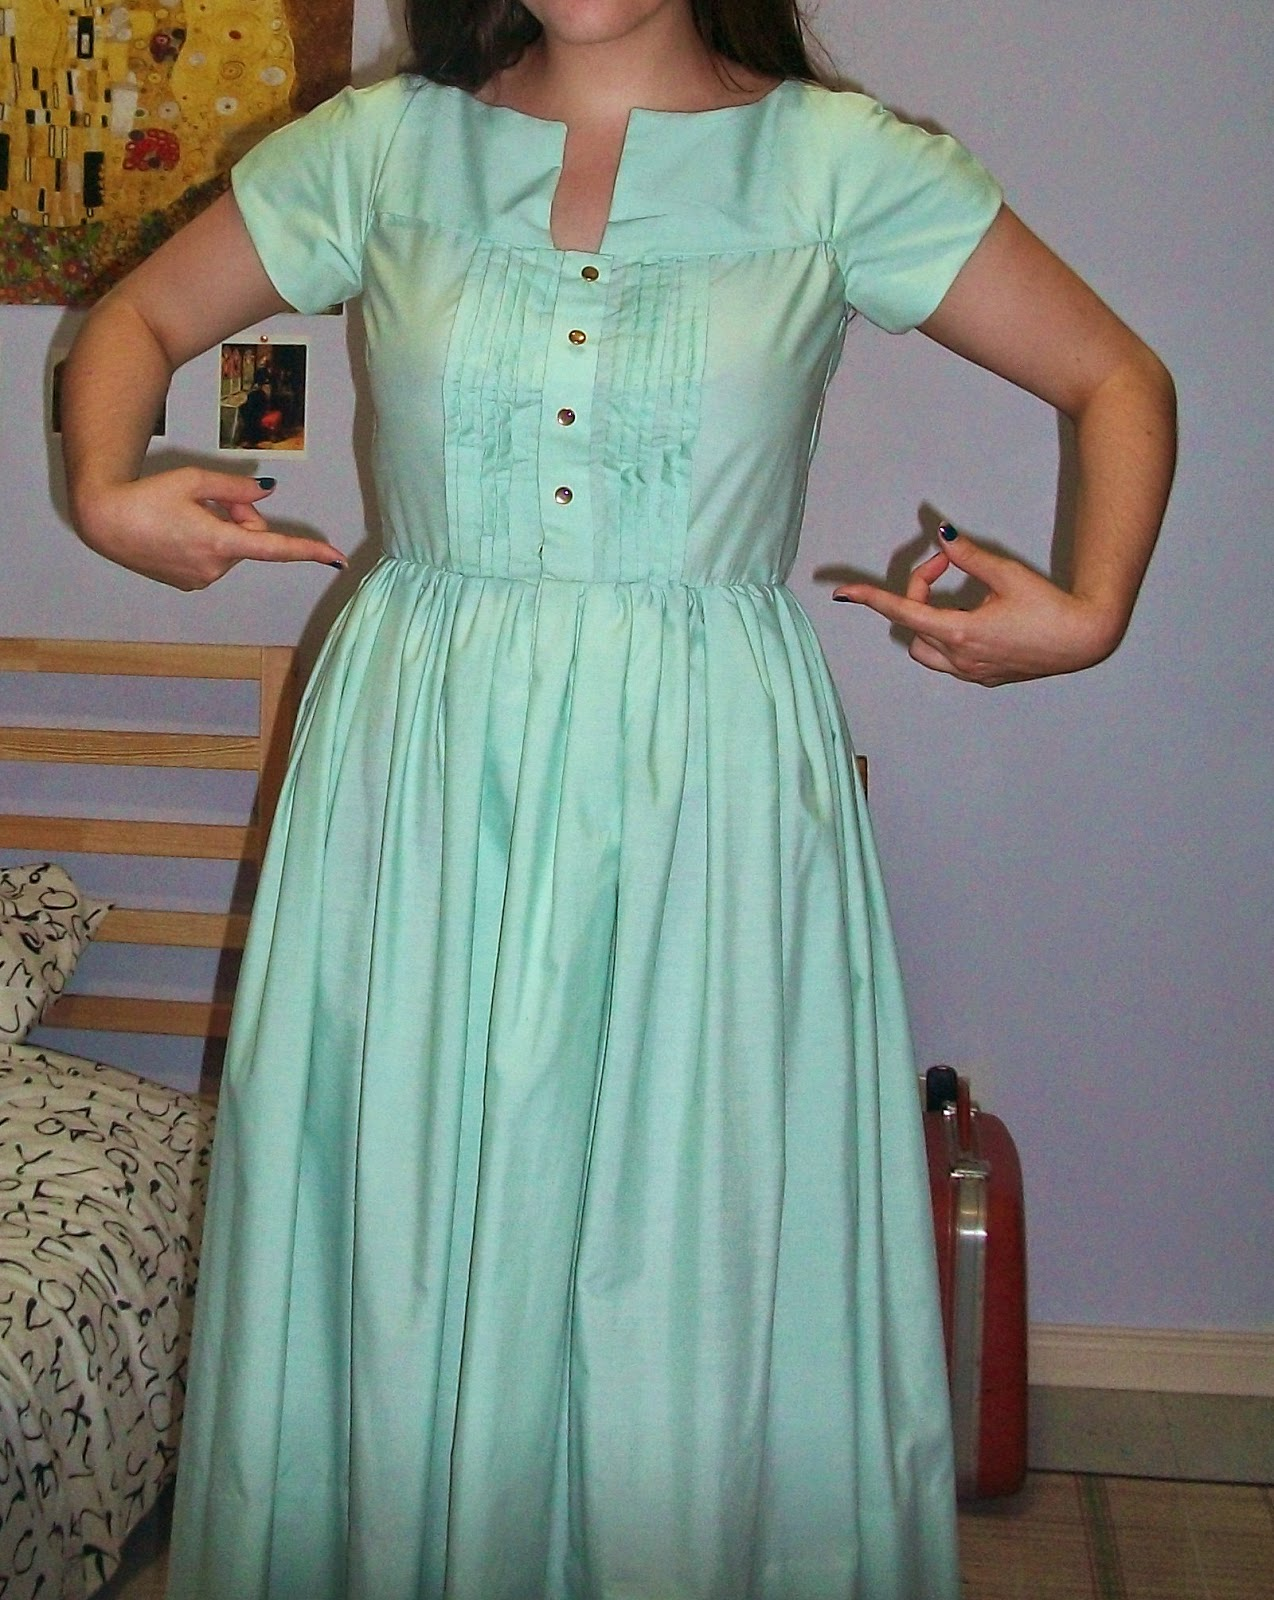 Photo of woman in green dress pointing at her waist.